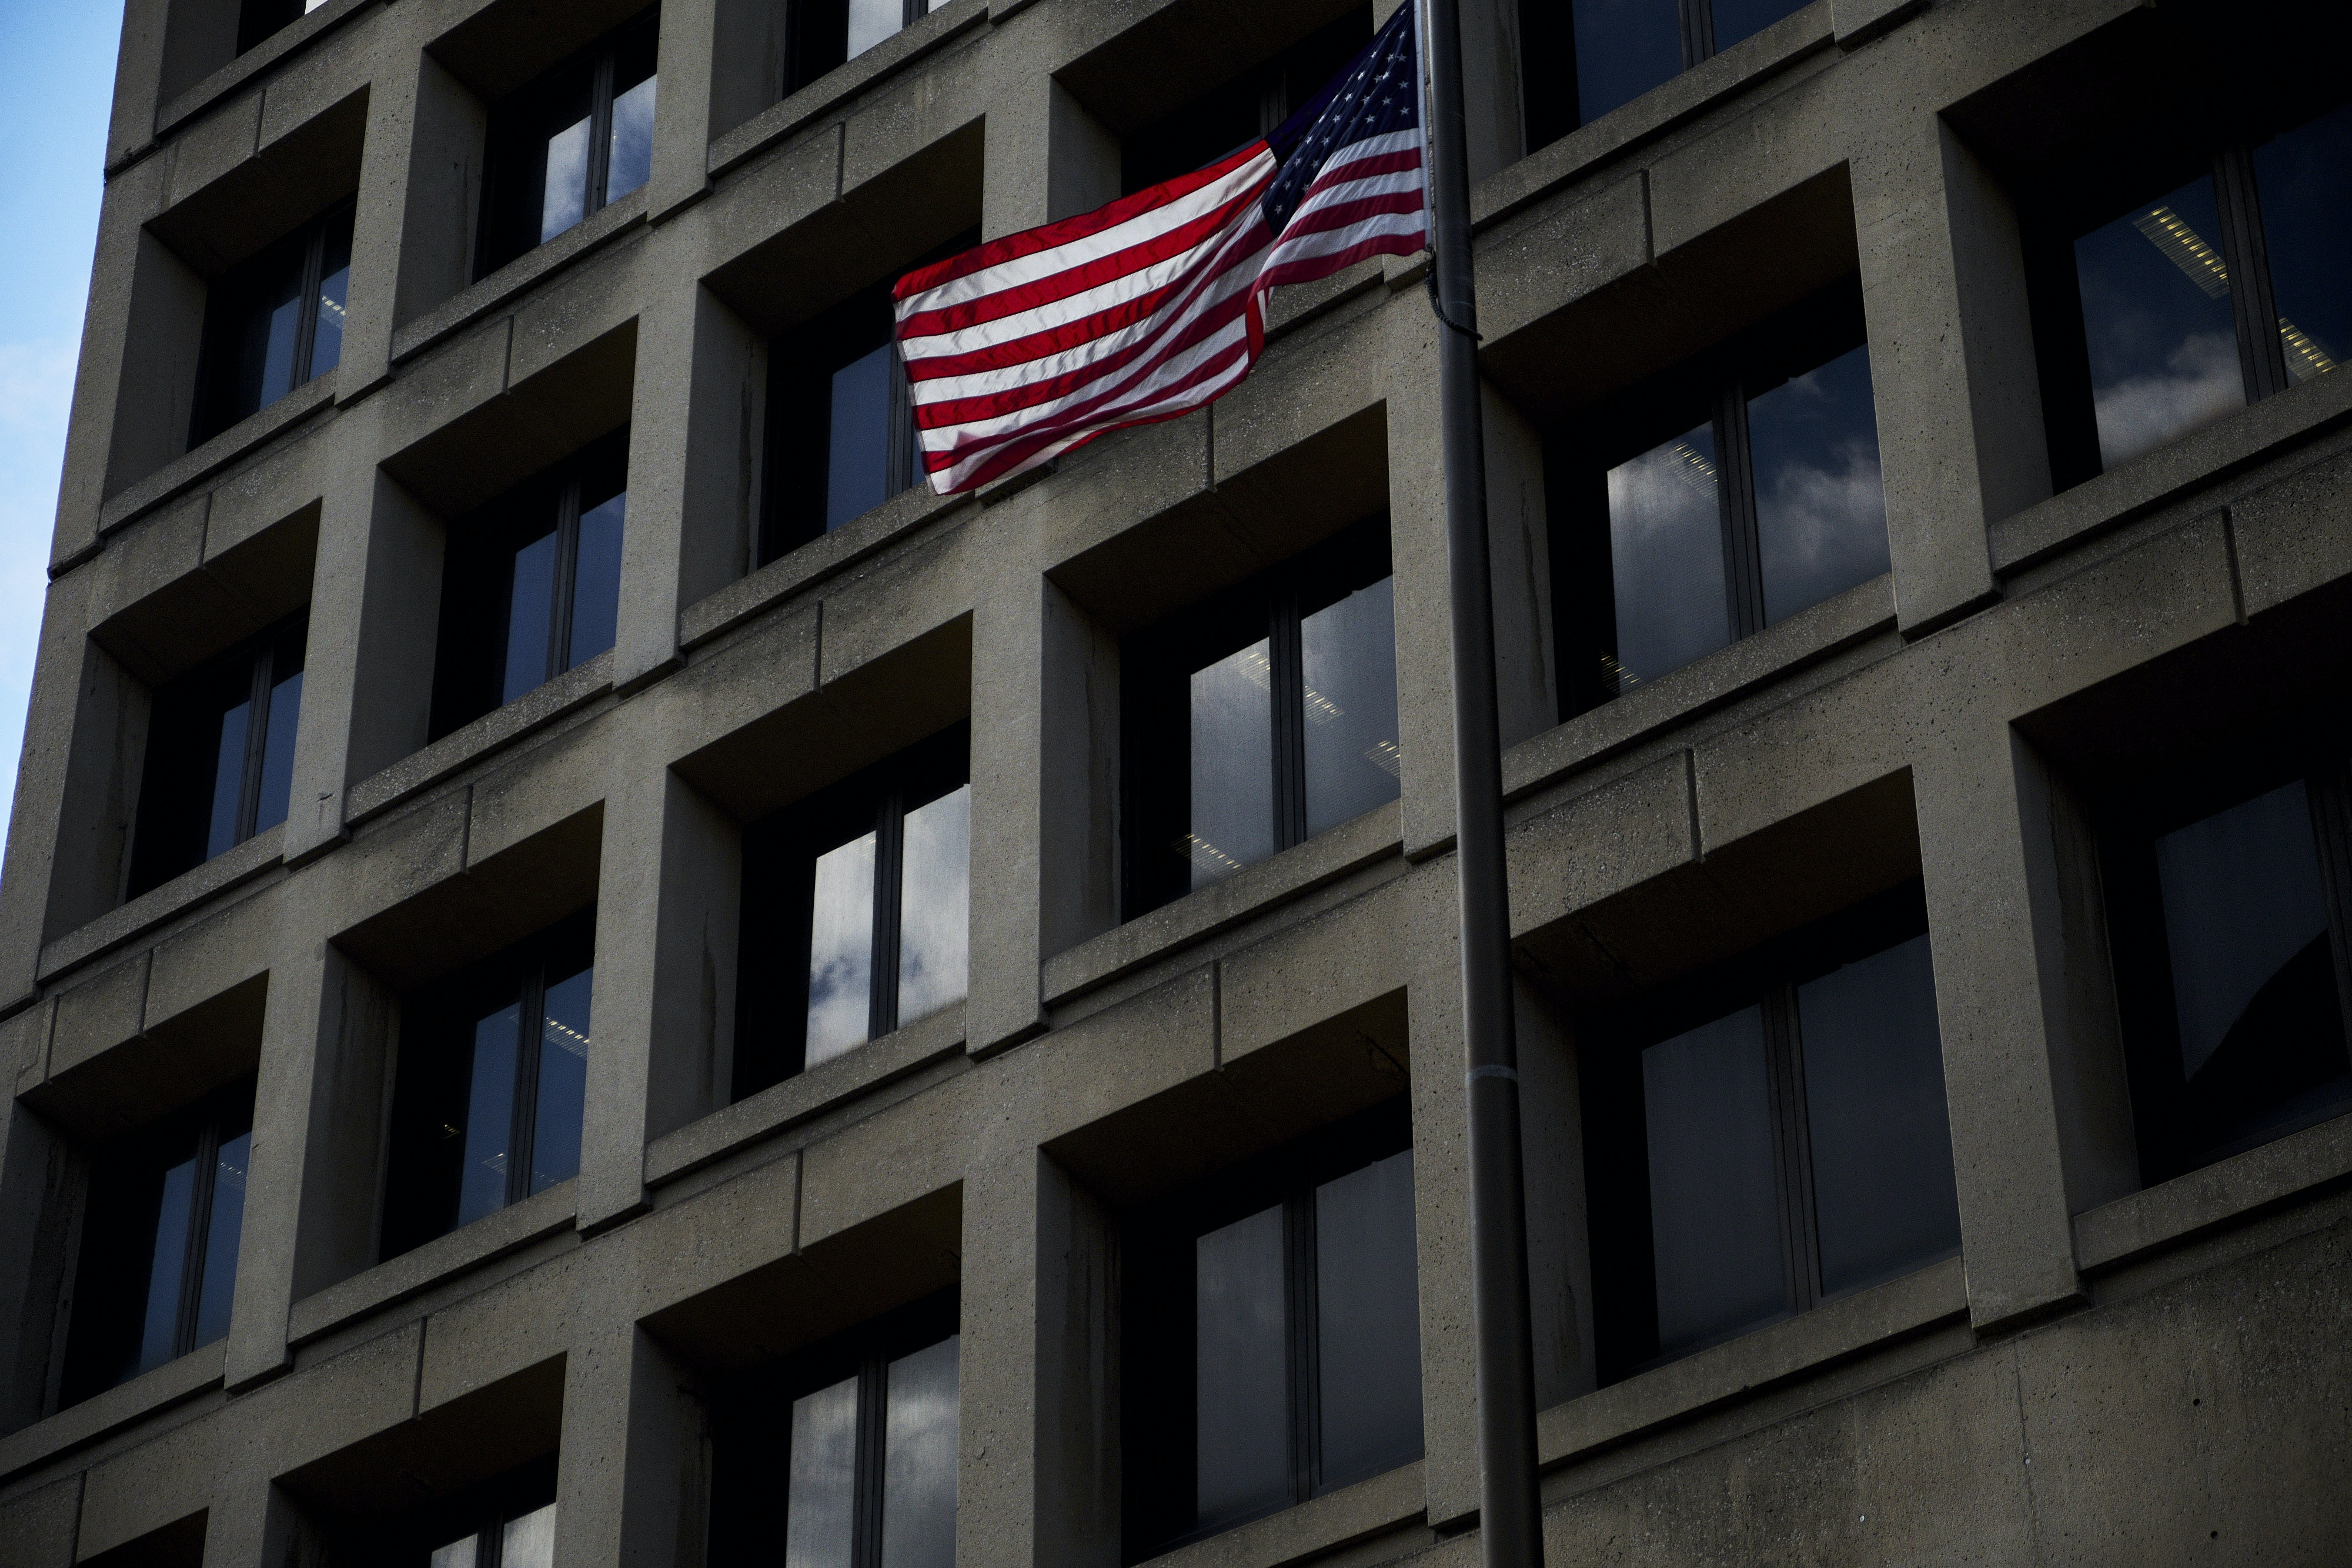 An American flag flies outside the Federal Bureau of Investigation (FBI) headquarters in Washington, D.C., U.S., on Friday, Feb. 2, 2018. FBI and Justice Department officials got a warrant to spy on a Trump campaign associate by misleading a surveillance court judge, House Republicans contend in a newly released memo that Democrats have dismissed as a contrived account intended to protect the president. Photographer: T.J. Kirkpatrick/Bloomberg via Getty Images